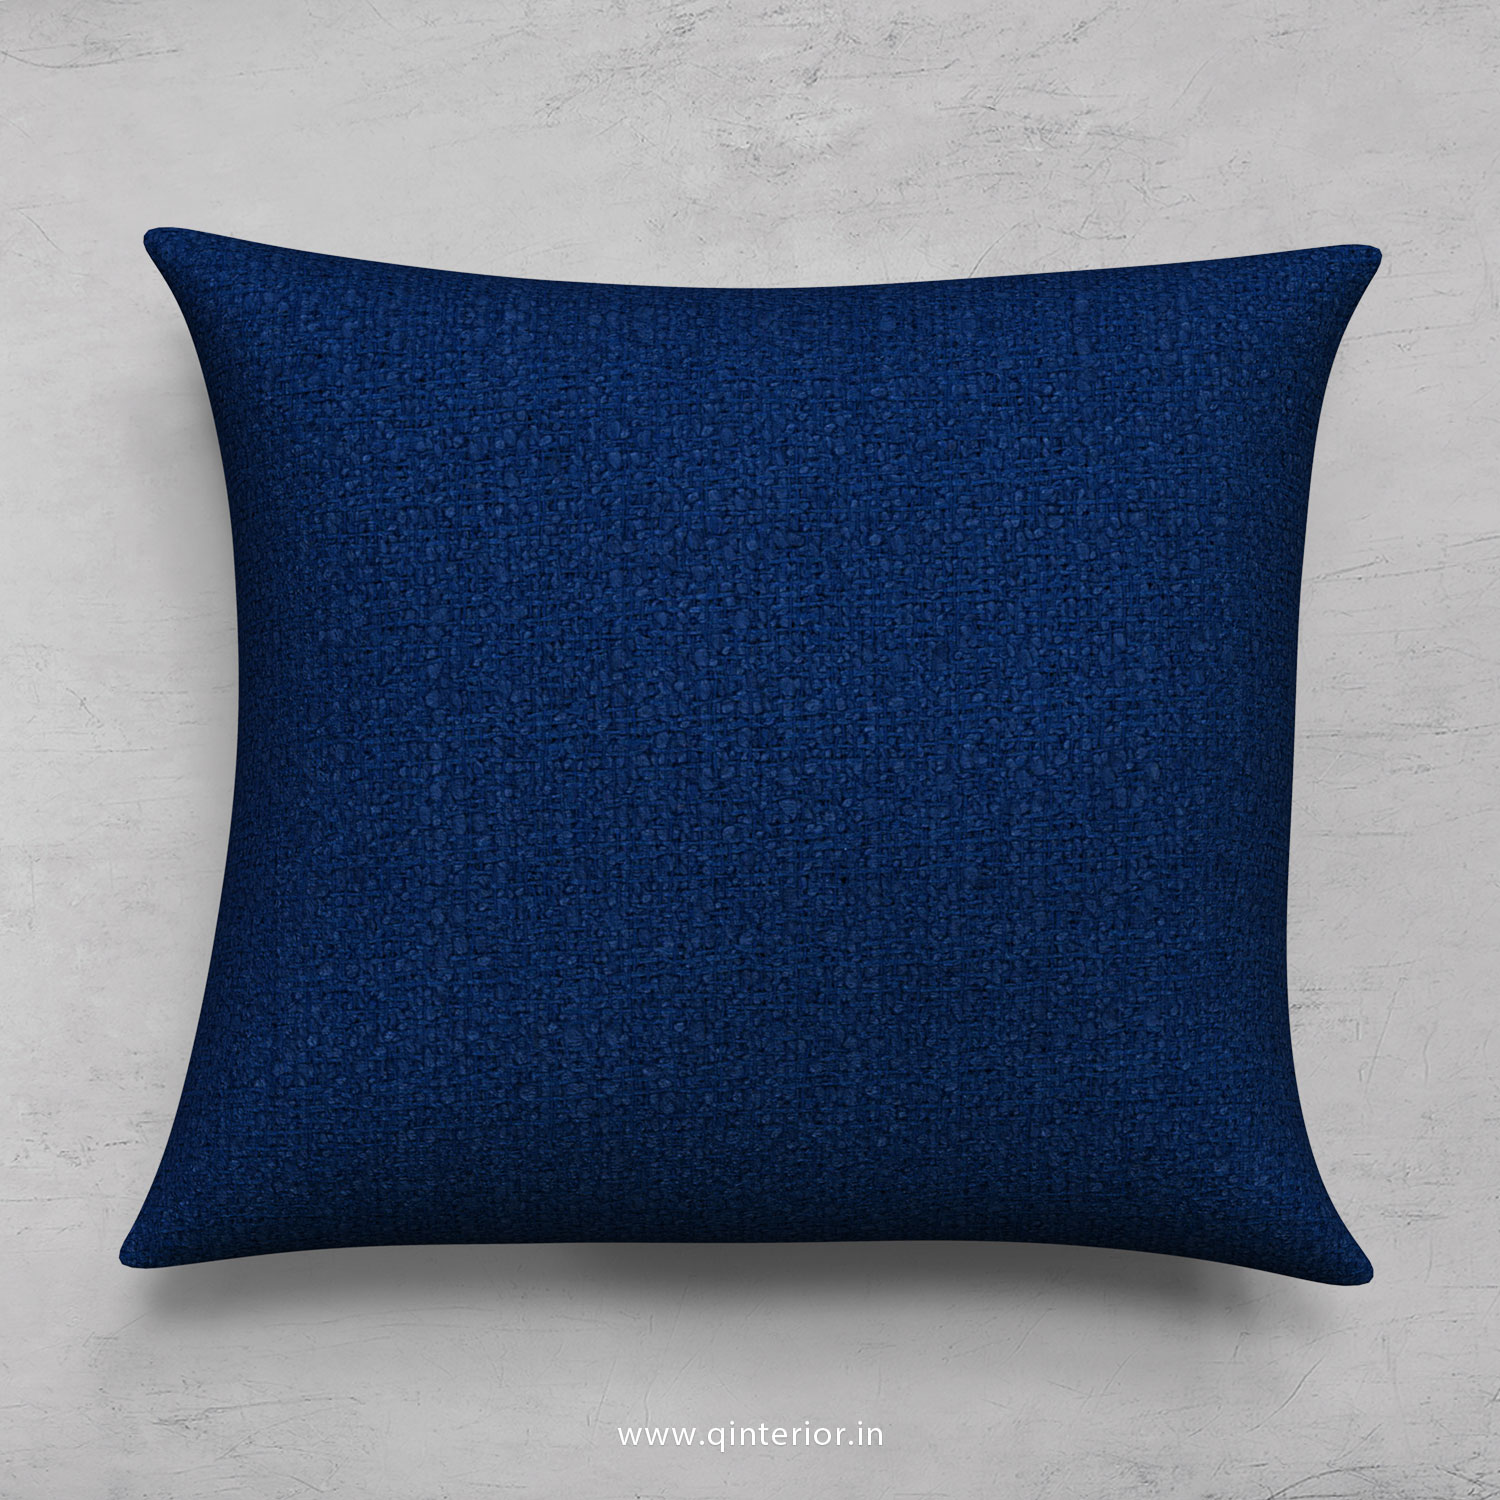 Cushion With Cushion Cover in Bargello - CUS001 BG07